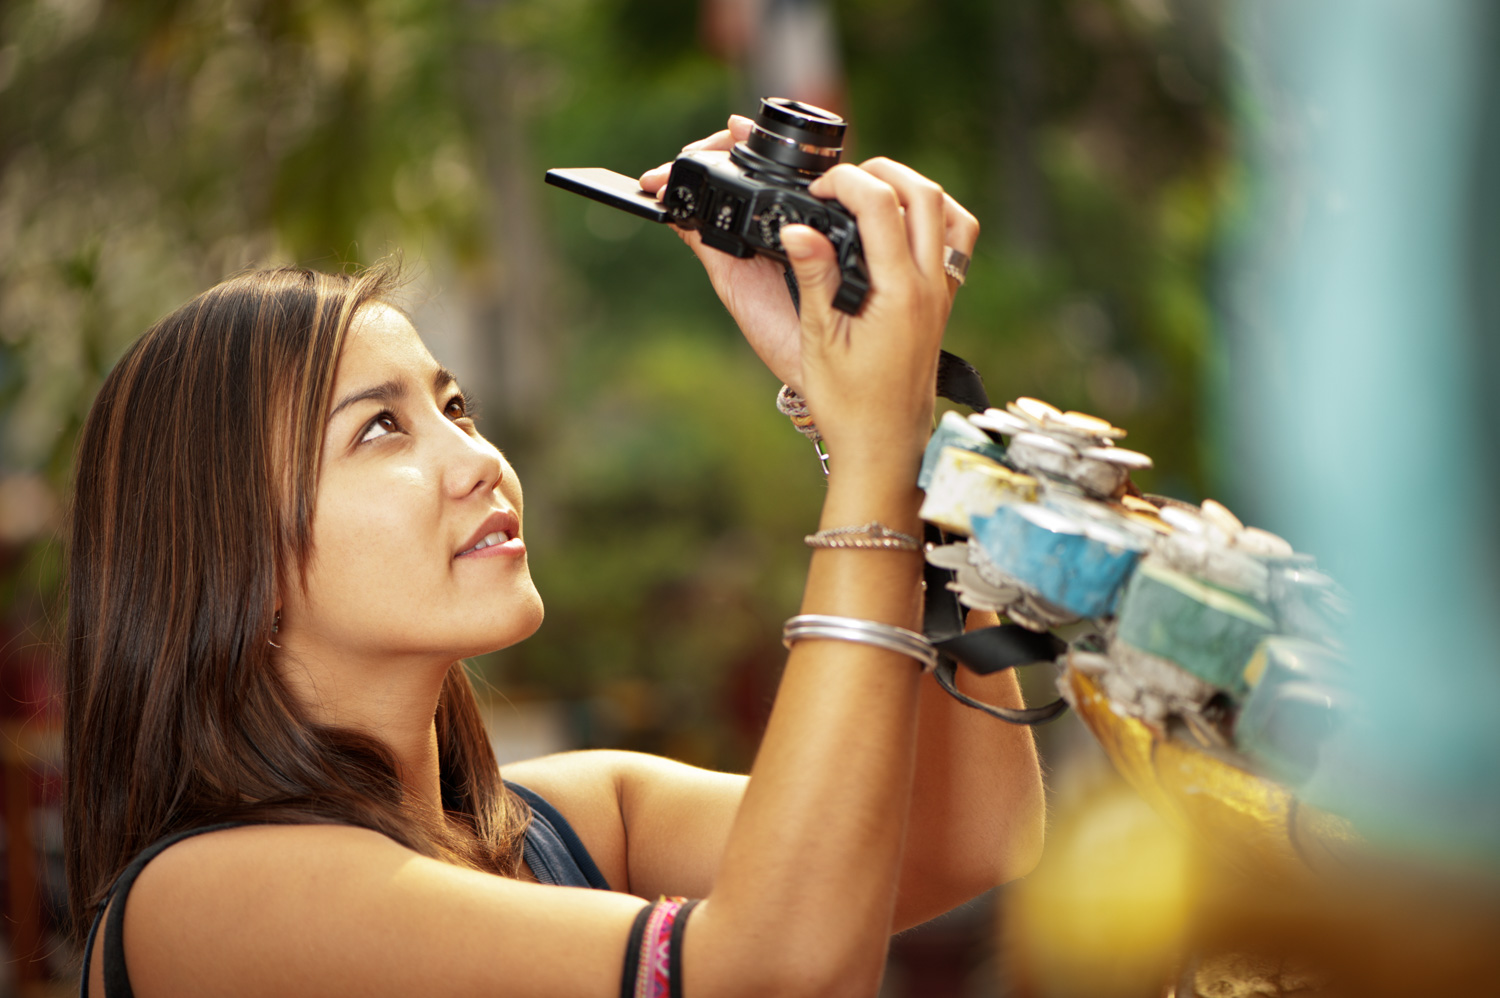 When do you need to obtain a model or property release? Attractive Young Photographer